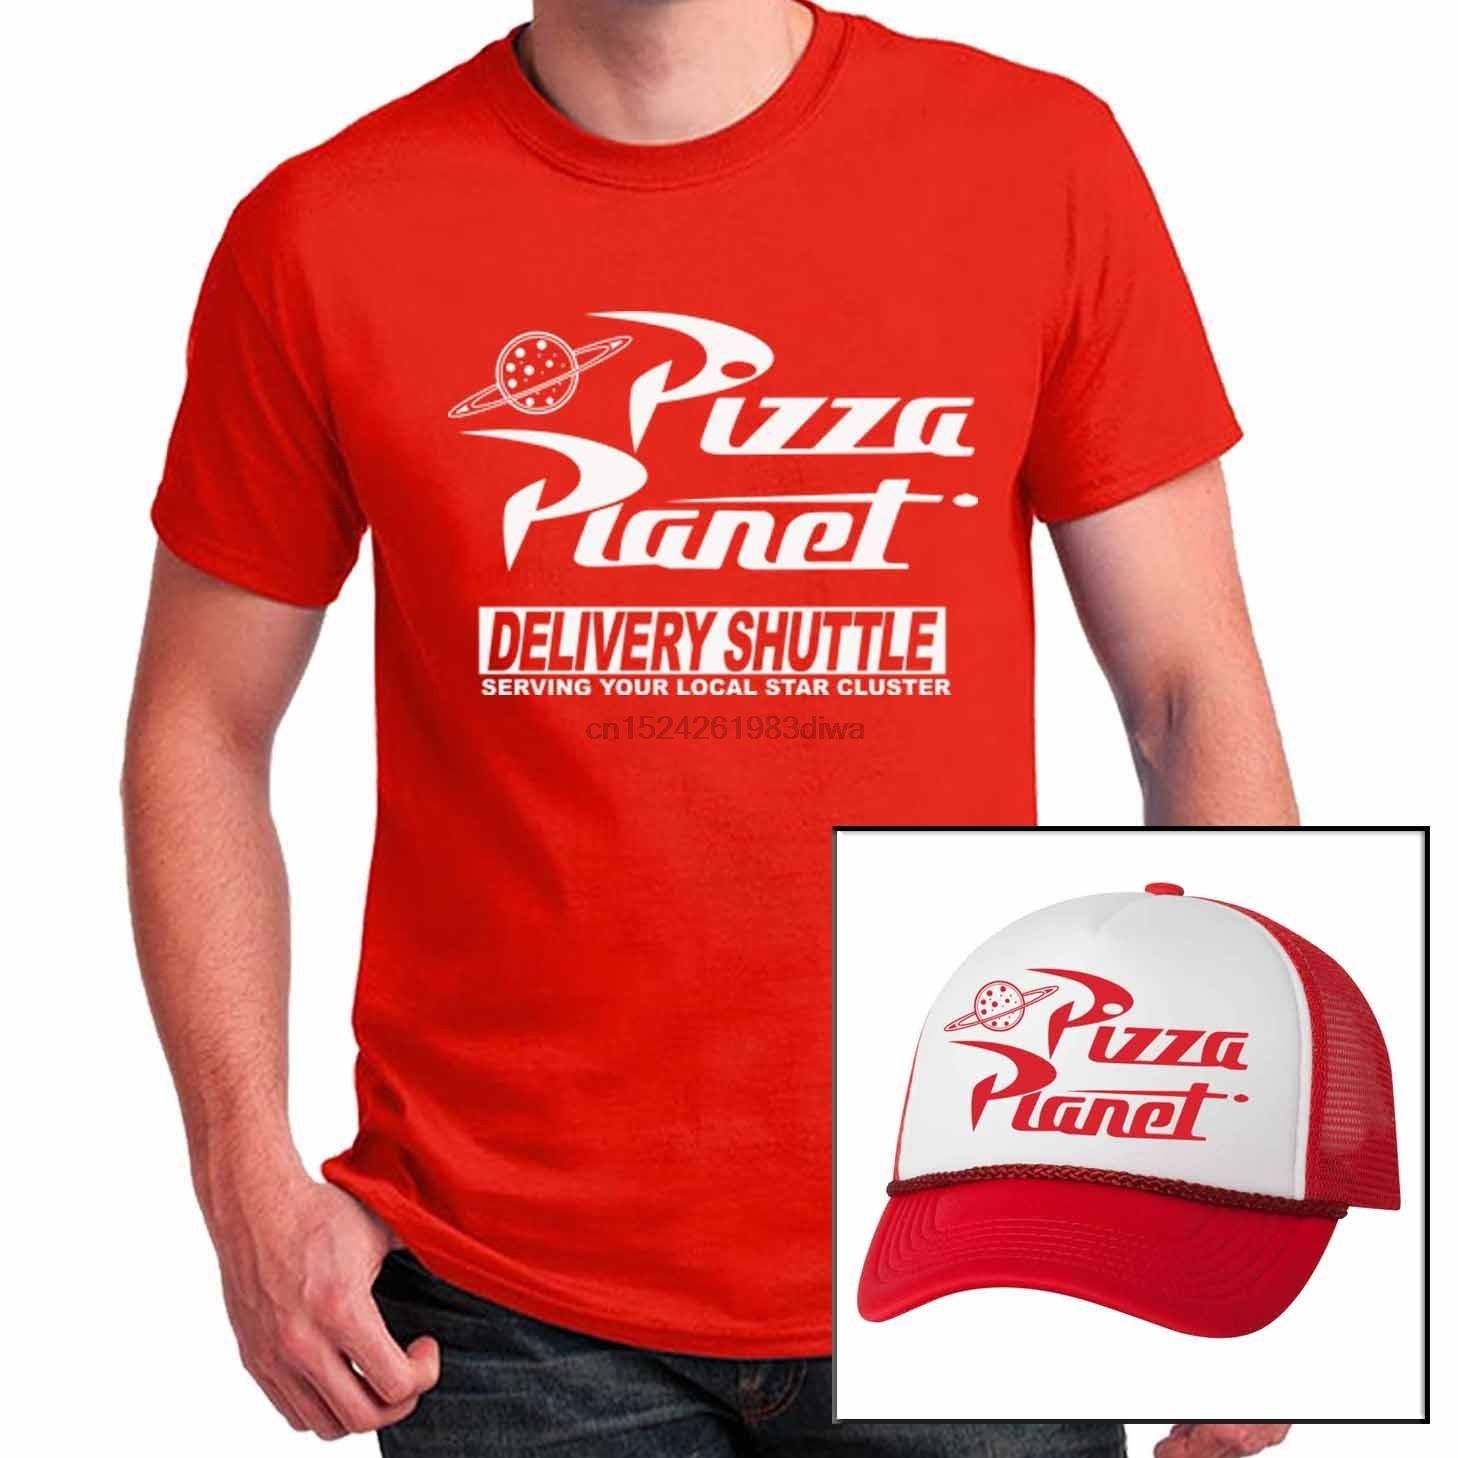 Us 699 Pizza Planet T Shirt With Matching Mesh Hat Combo Halloween Costume Cosplay Set In T Shirts From Mens Clothing On Aliexpress